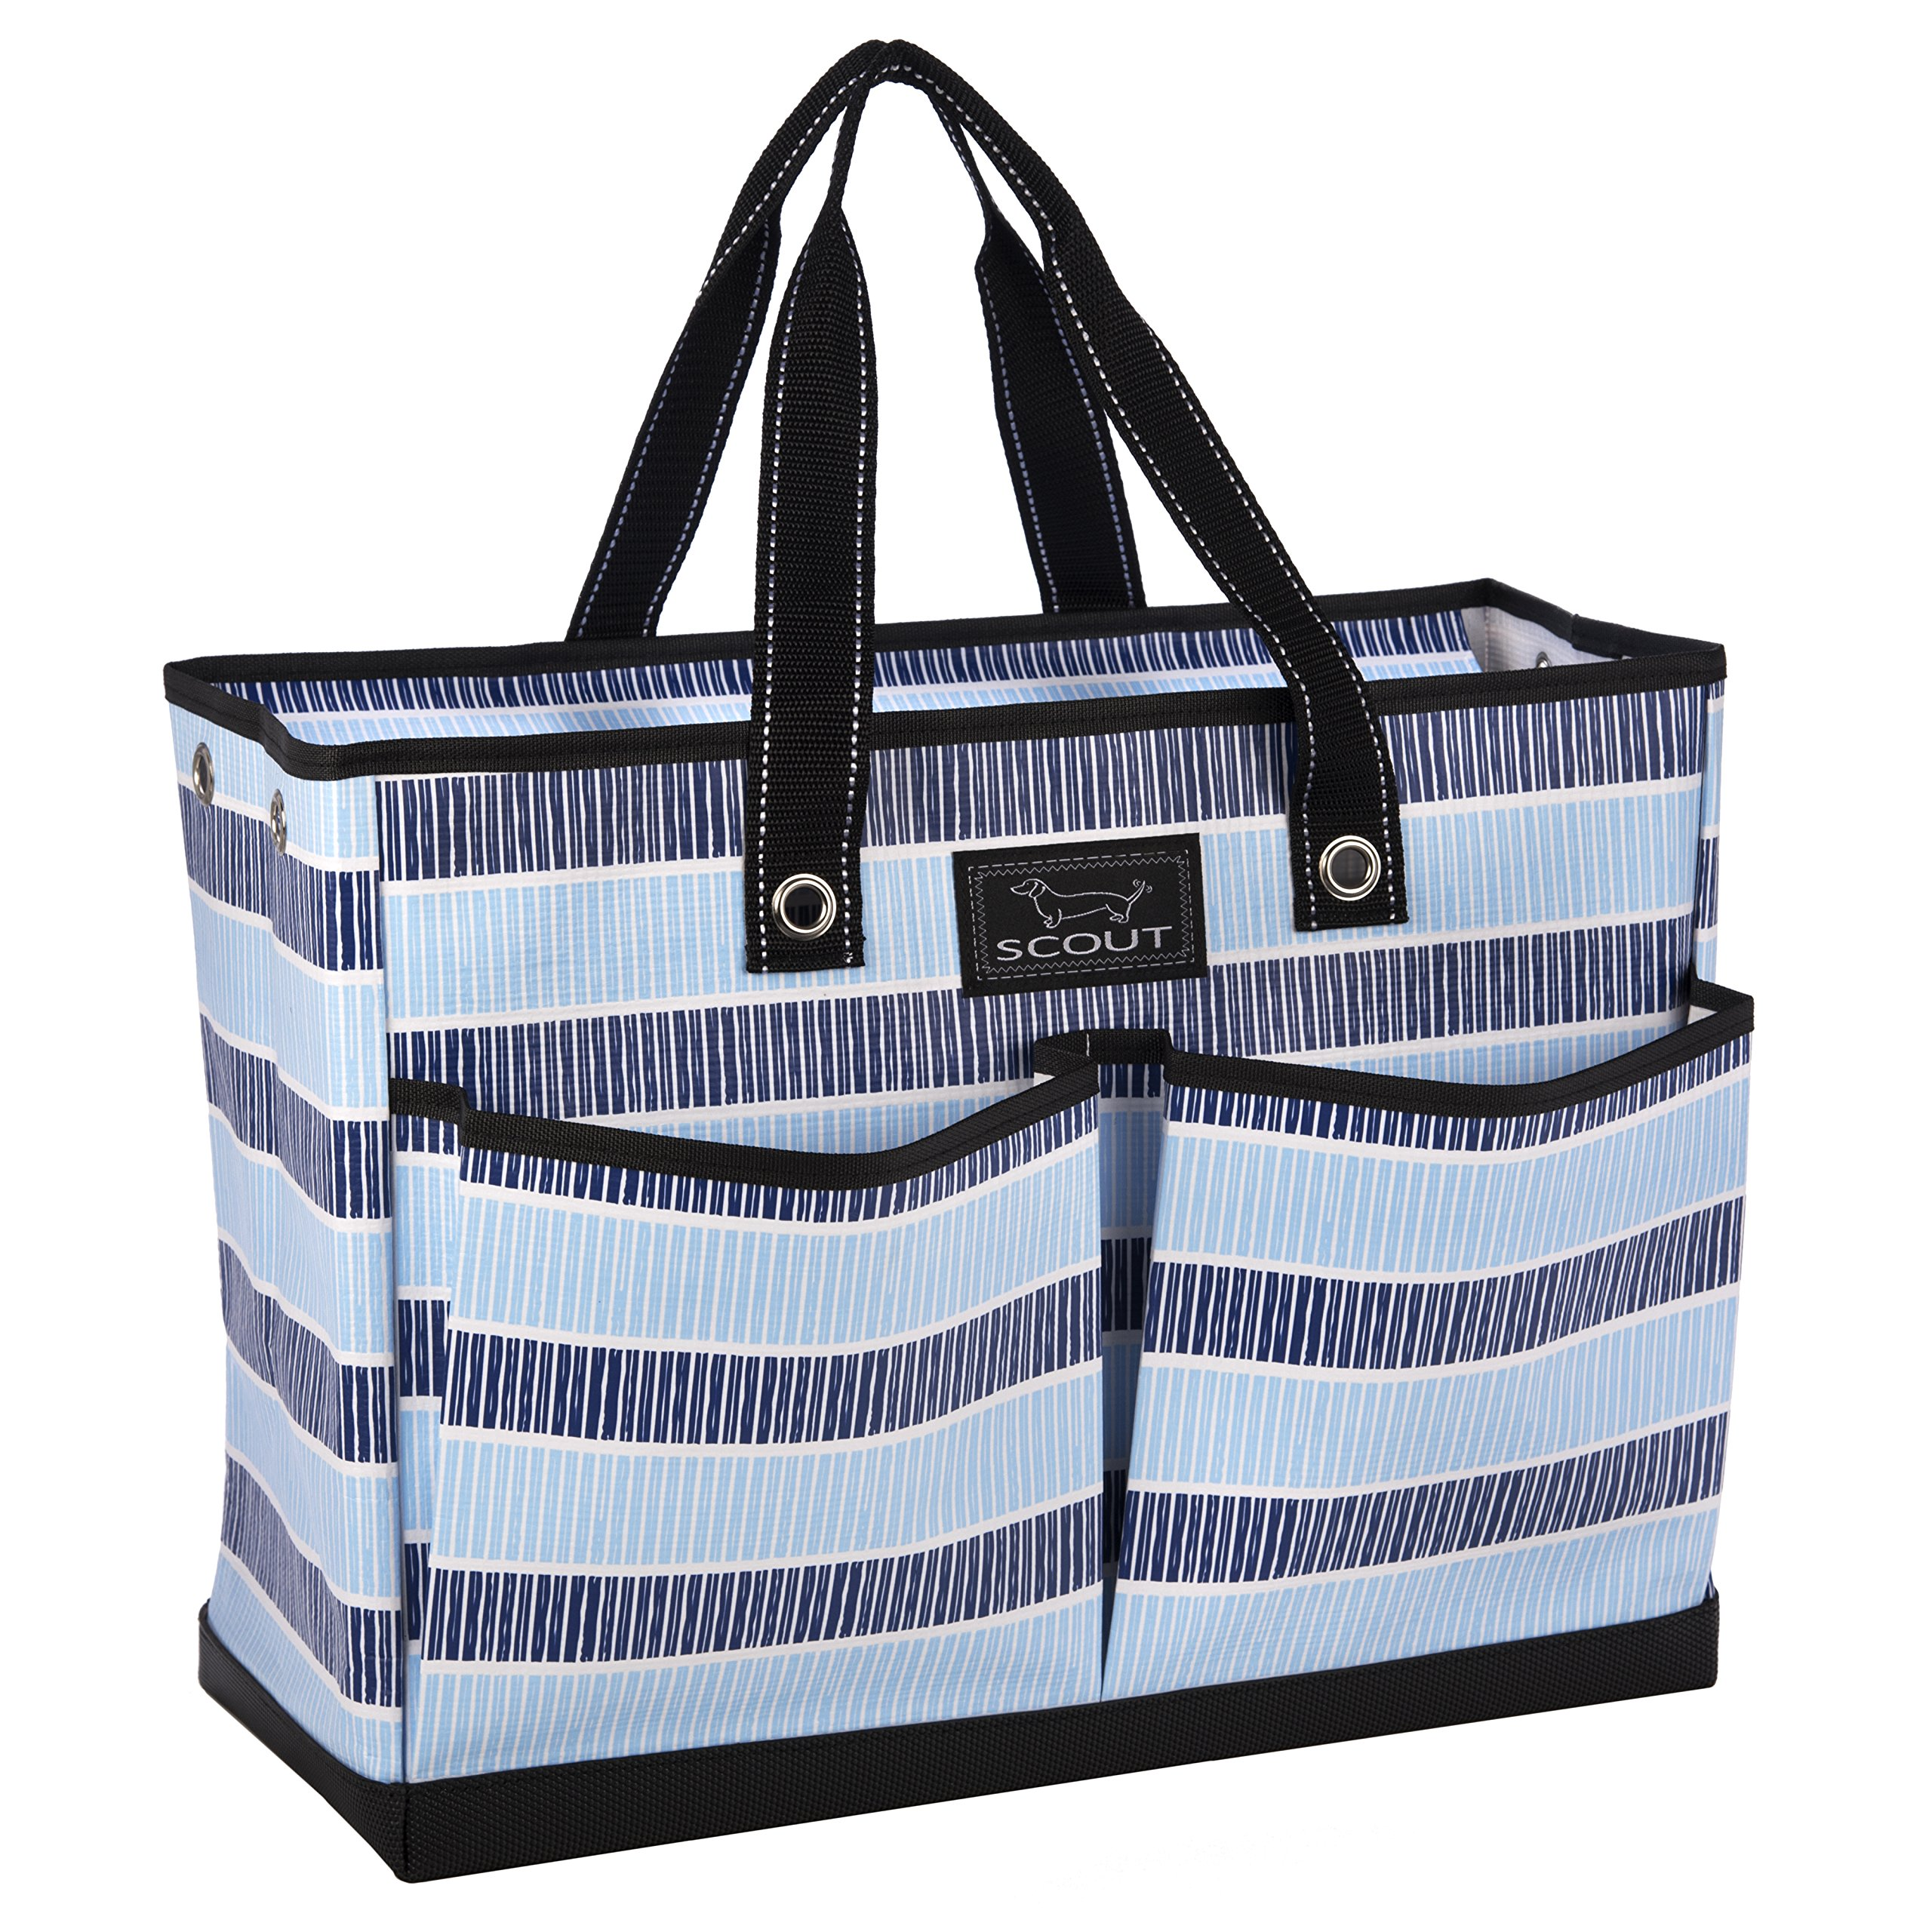 SCOUT BJ Bag, Large Multi Pocket Utility Tote for Beach and Pool, Reinforced Bottom, Water Resistant, Zips Closed, Deep End